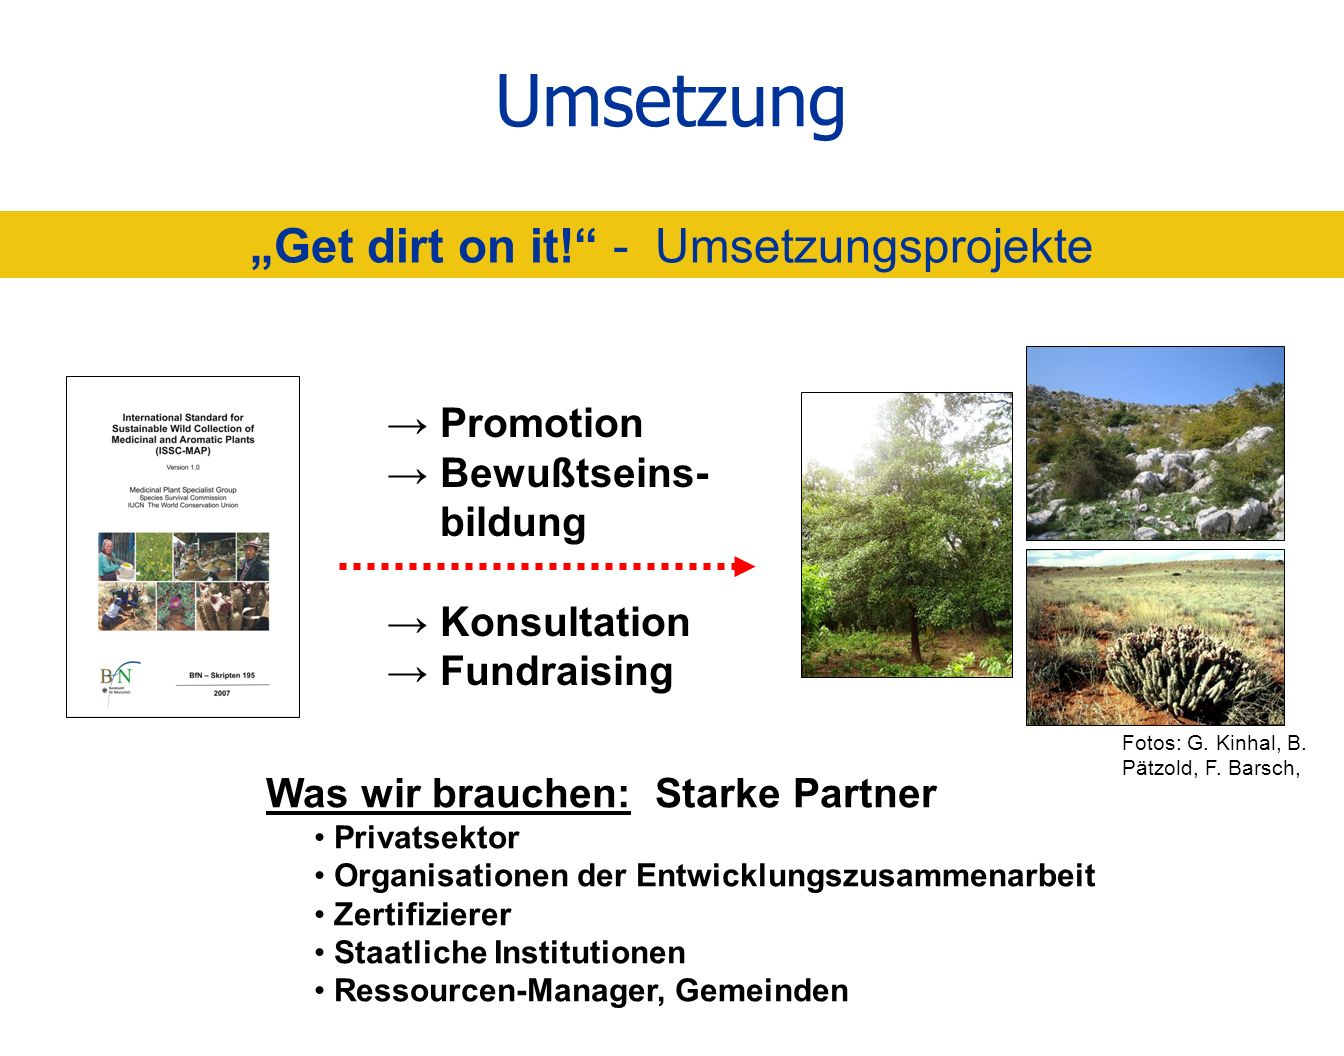 """Get dirt on it! - Umsetzungsprojekte"